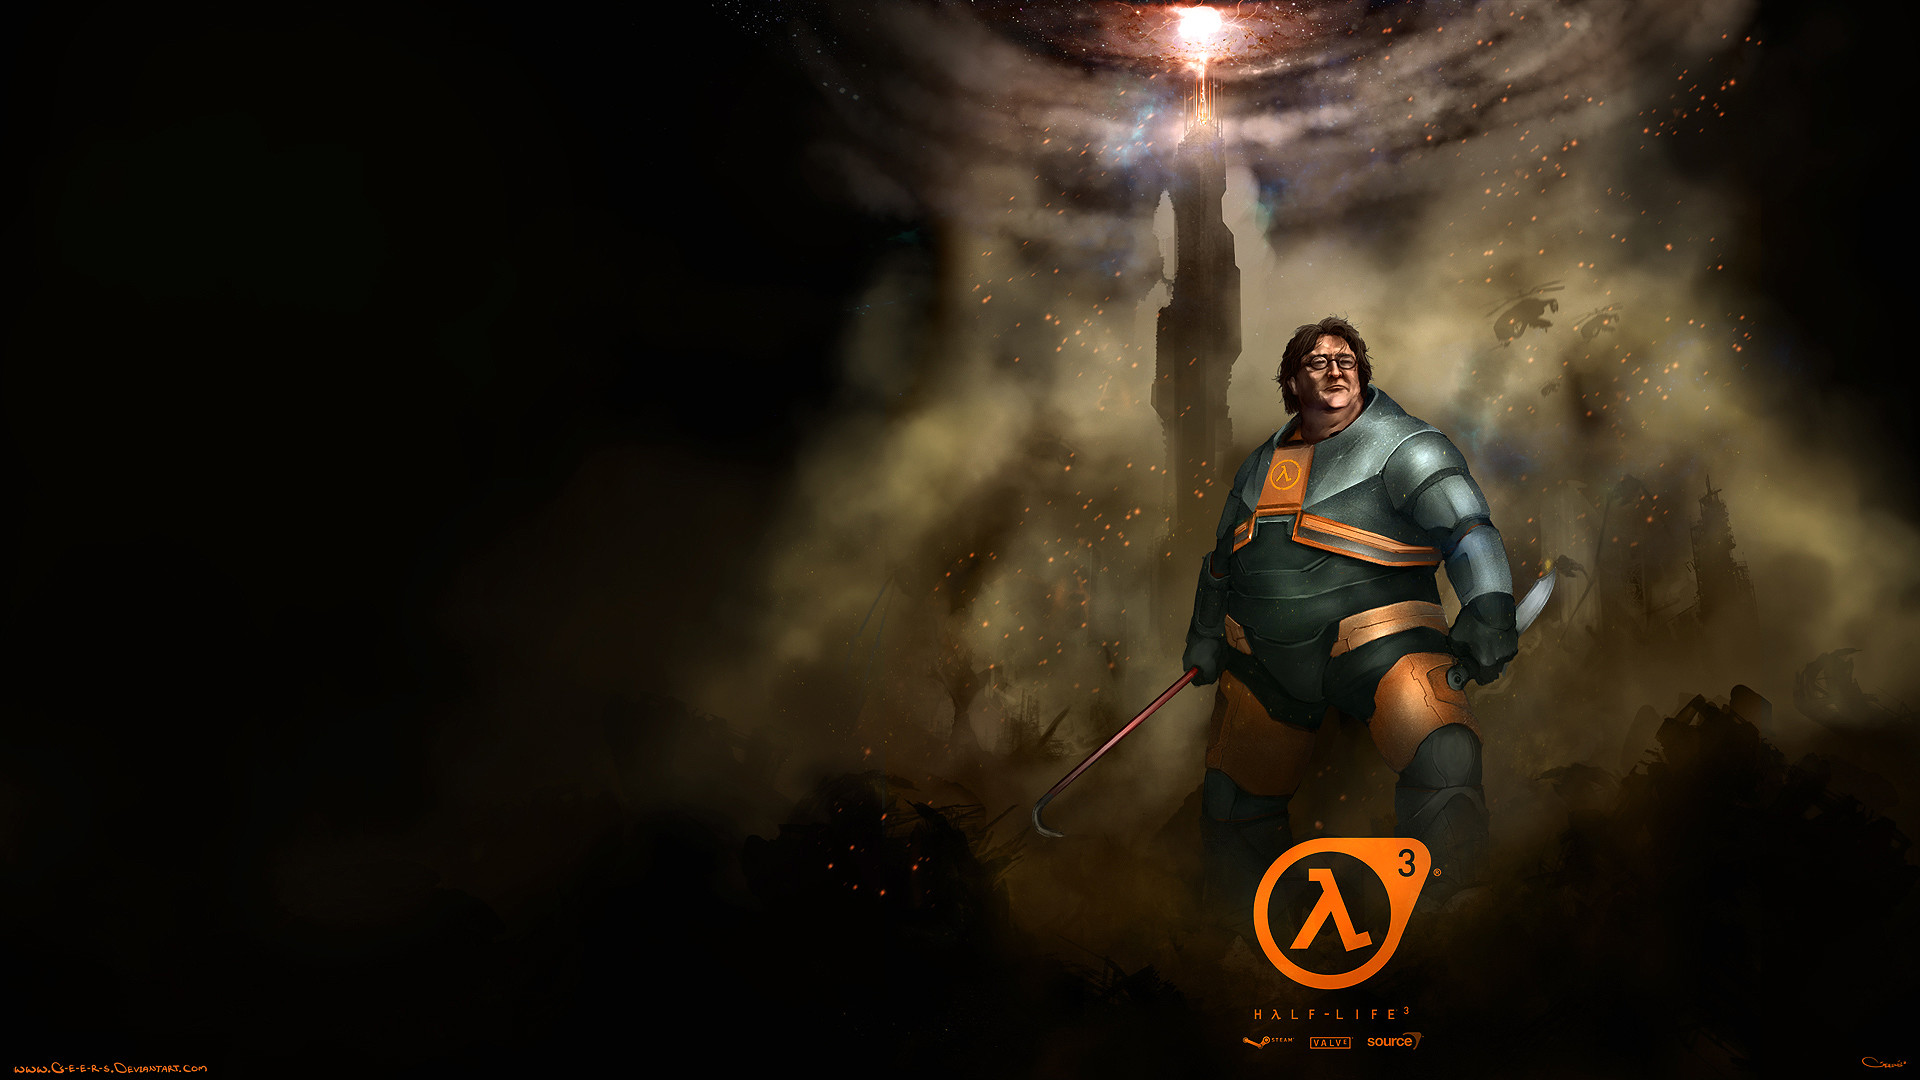 1920x1080 Video Game - Half-Life 3 Gabe Newell Gaben Half-Life Wallpaper